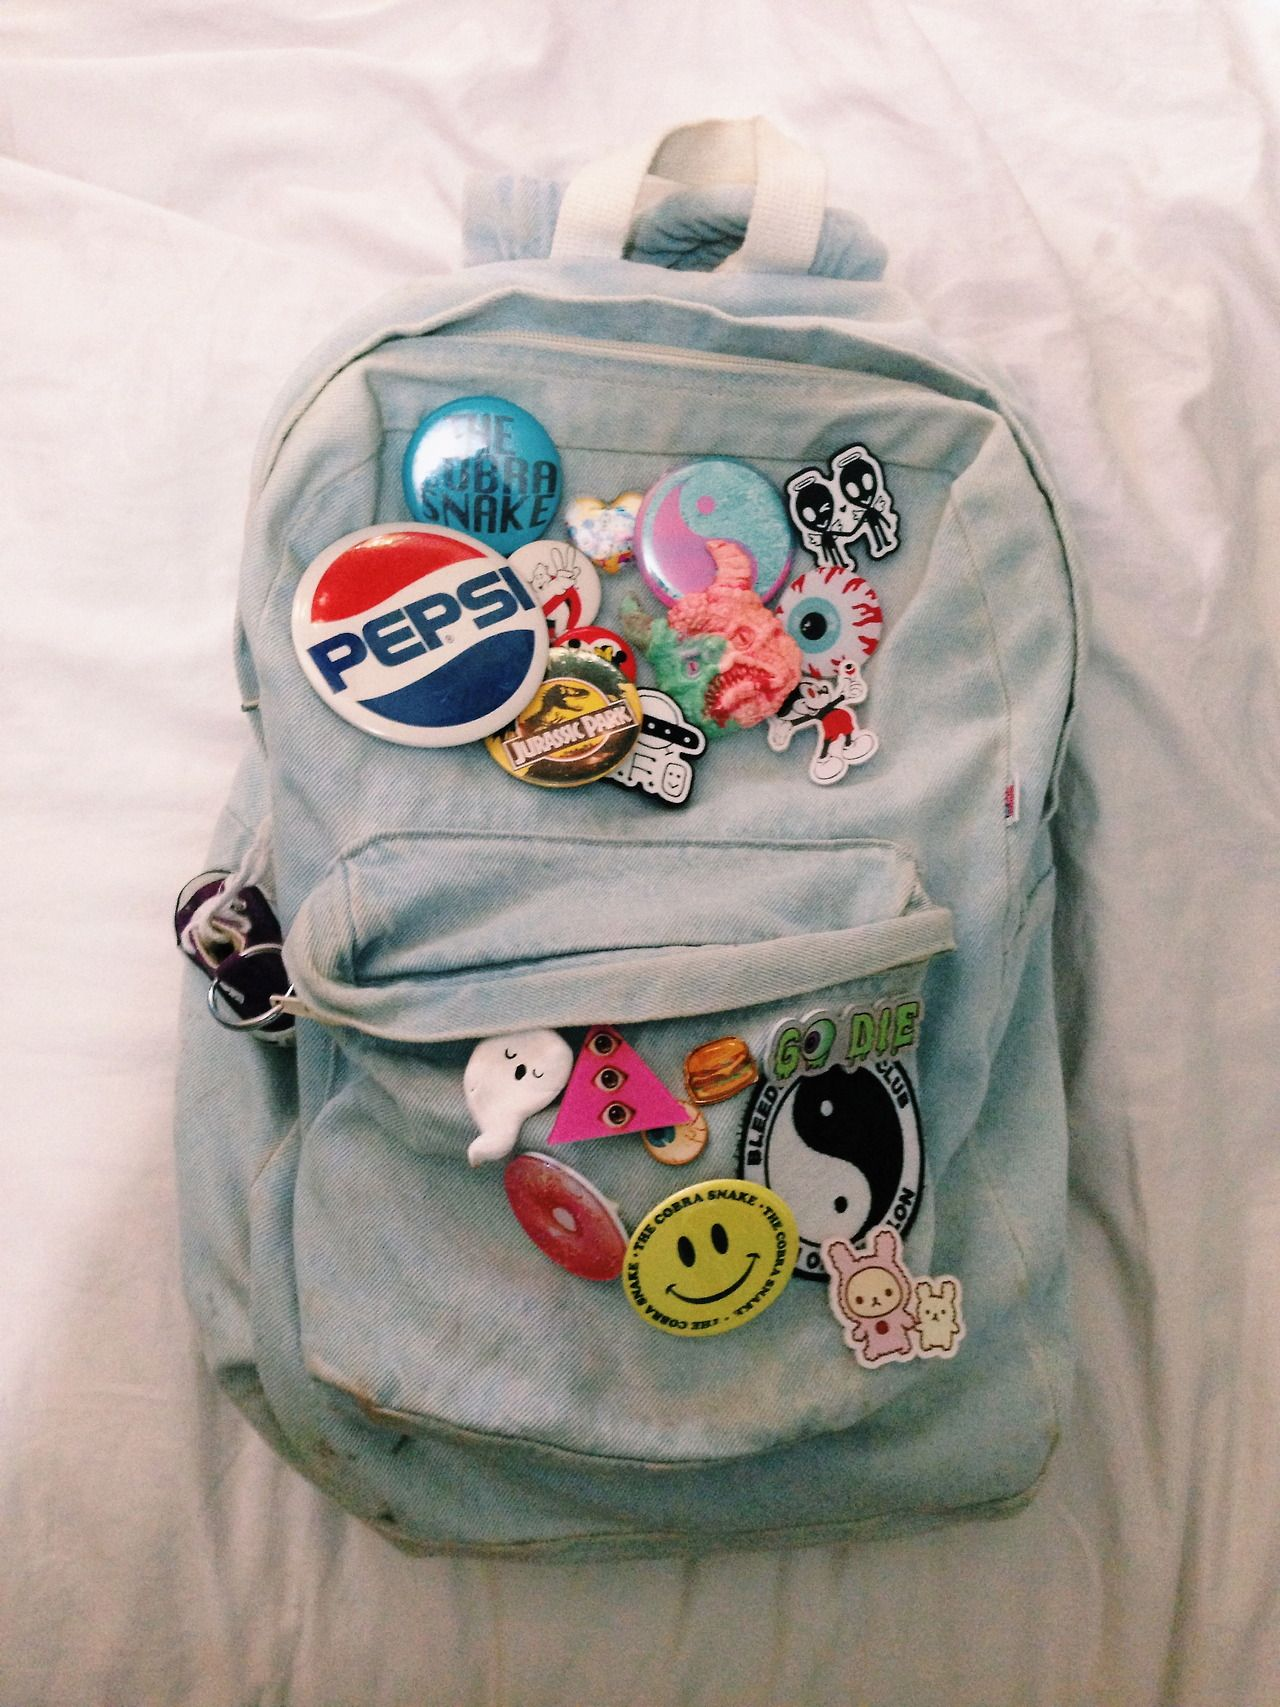 bdbf4bbfe Backpack With Patches, Backpack With Pins, Backpack For Teens, Pin And  Patches,